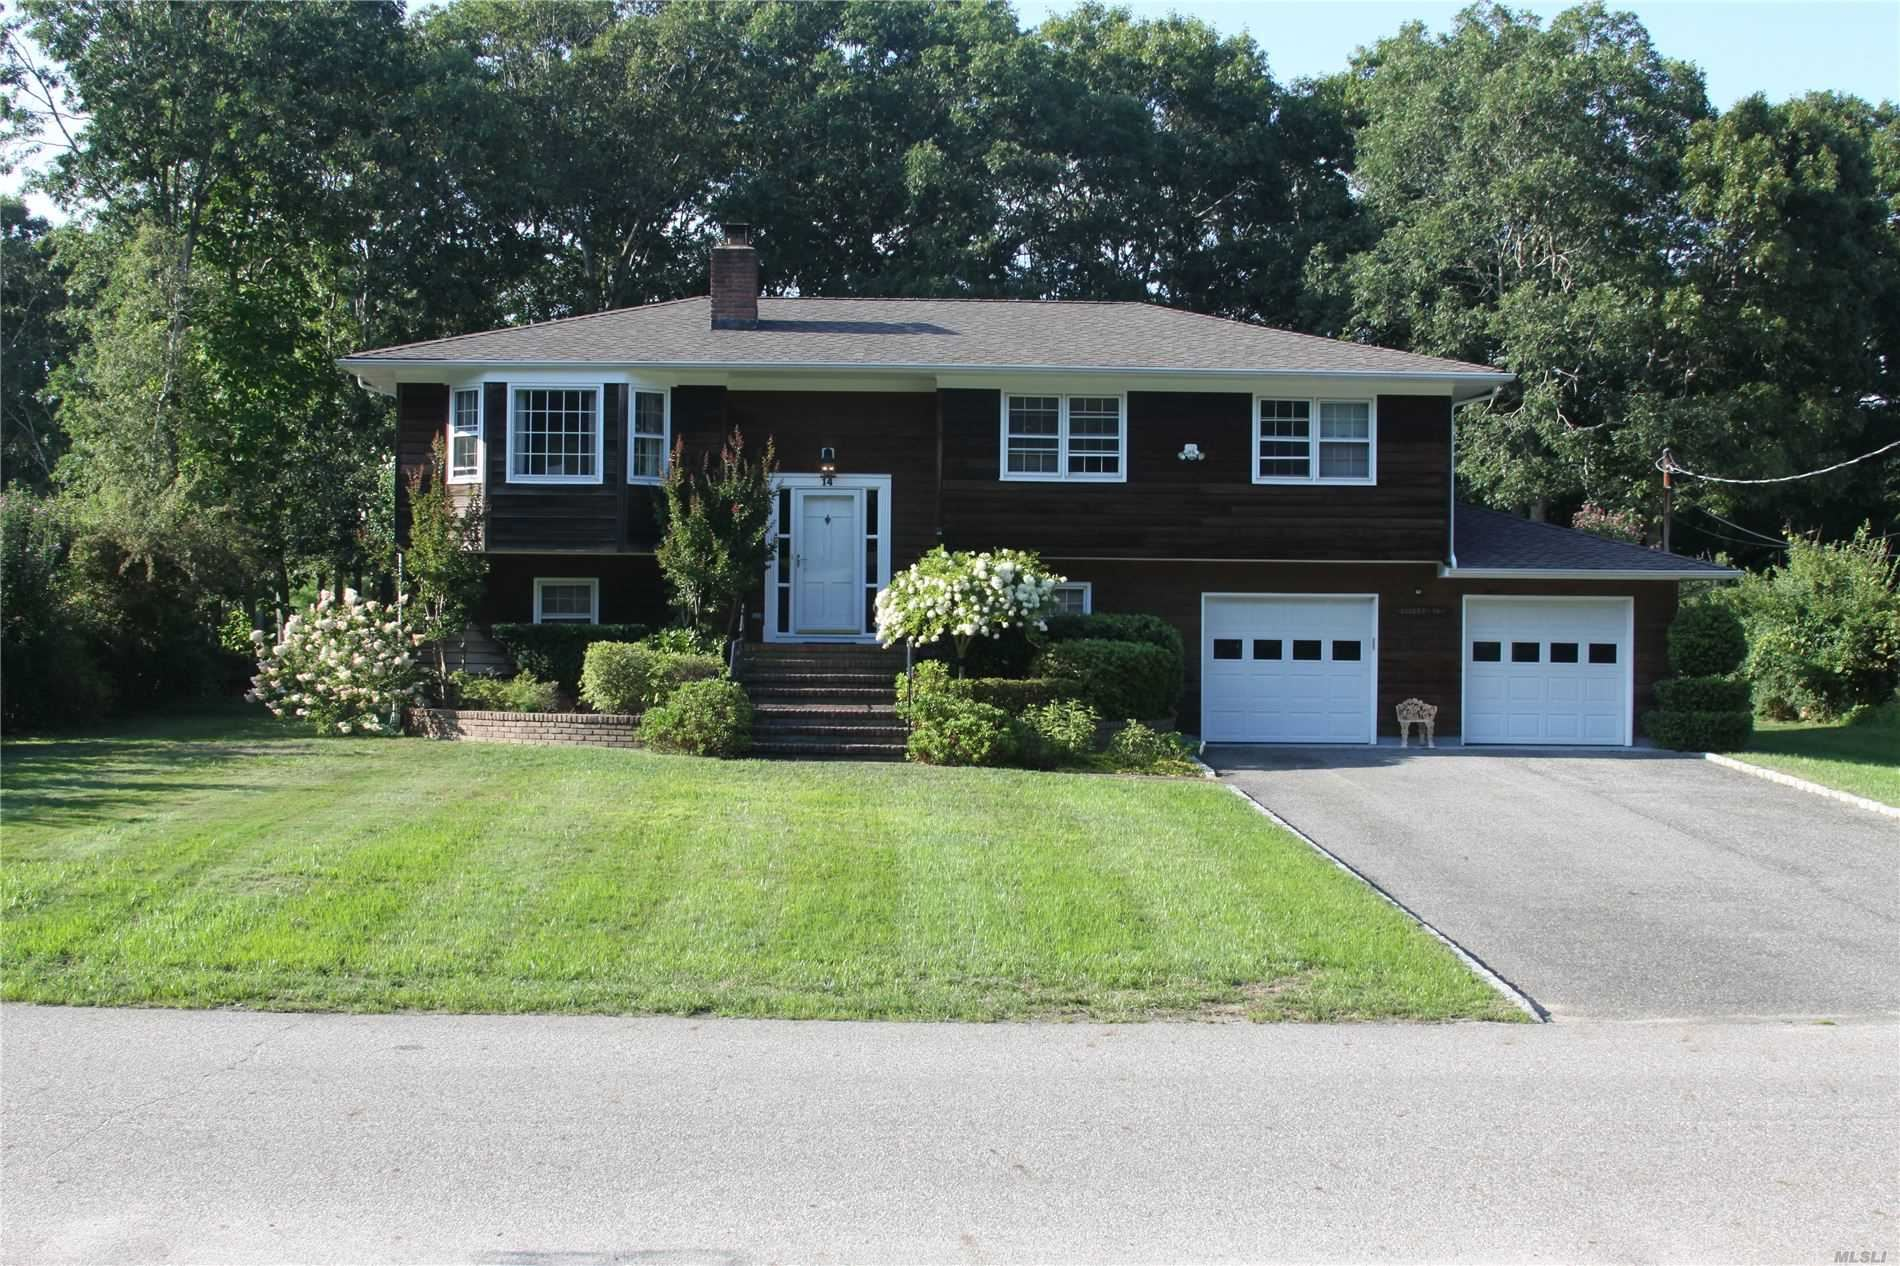 14 White Birch Trail, East Quogue, NY 11942 - MLS#: 3174268